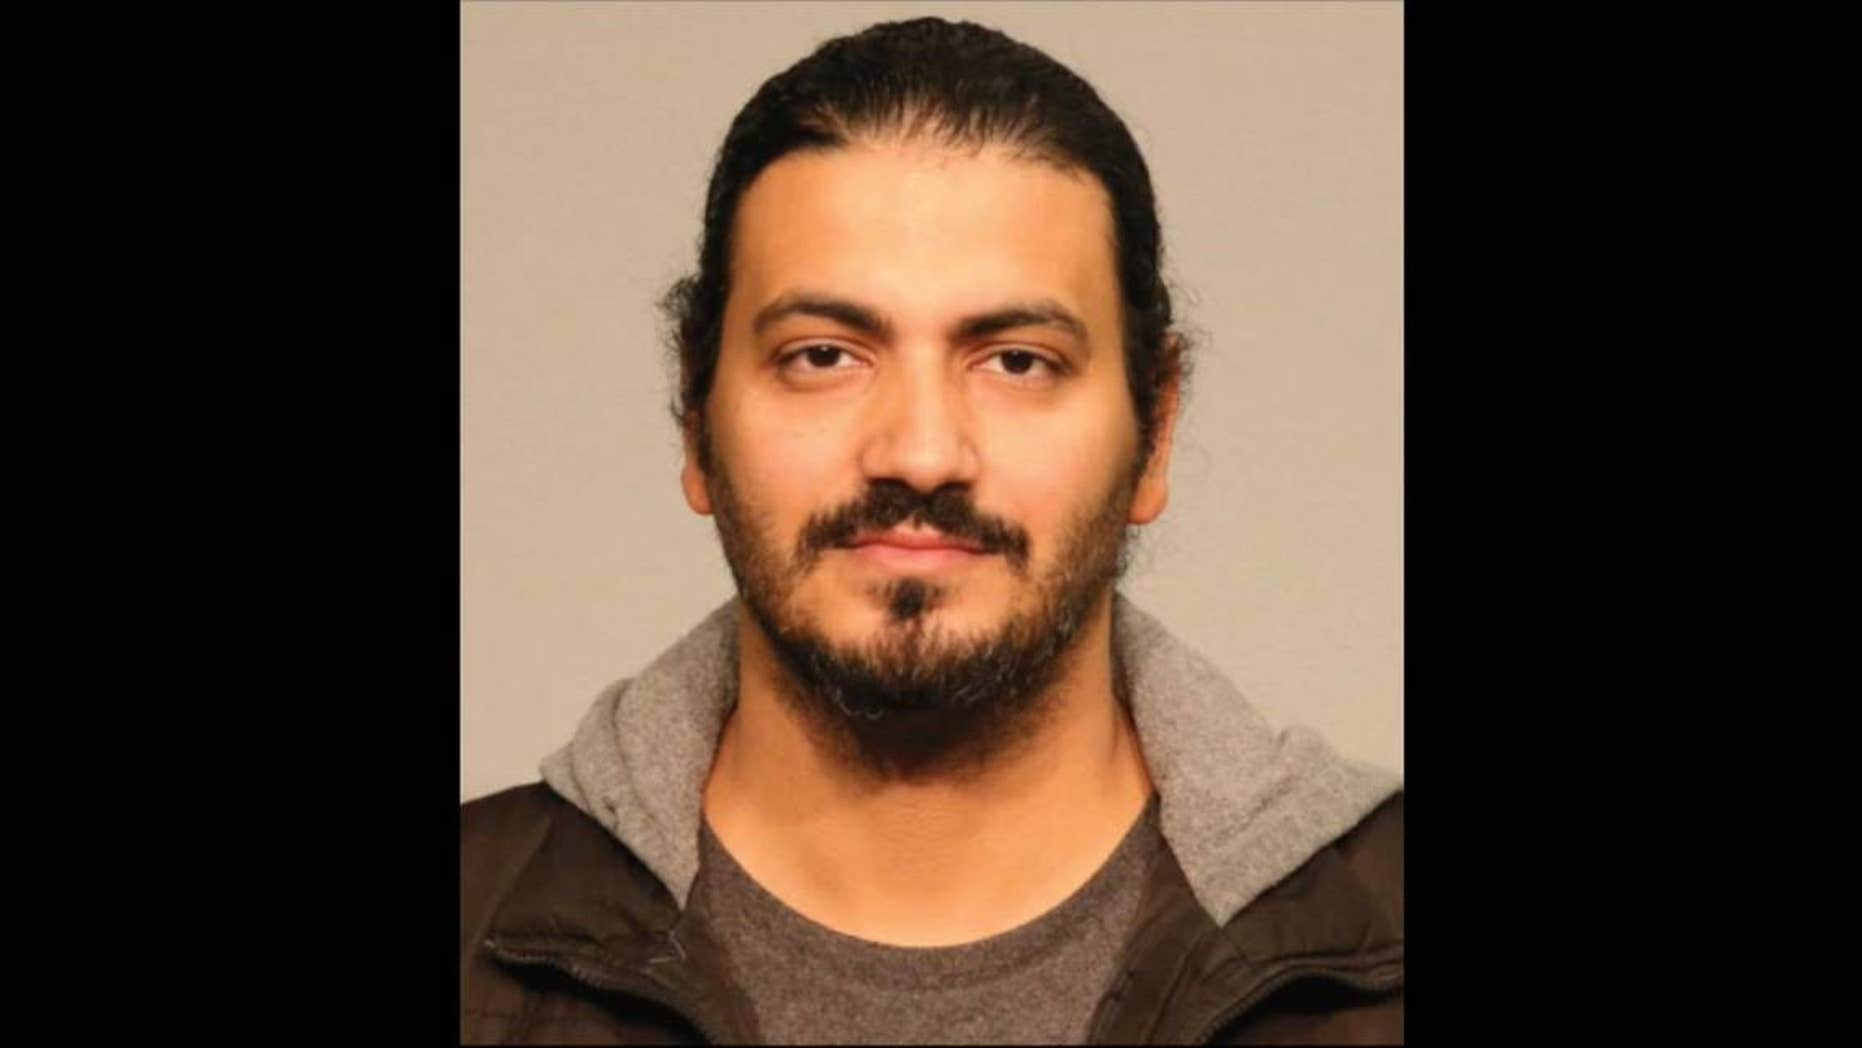 Mohamed Mahmoud, 37, faces a list of weapons-related charges in connection with Saturday's shooting, authorities say.